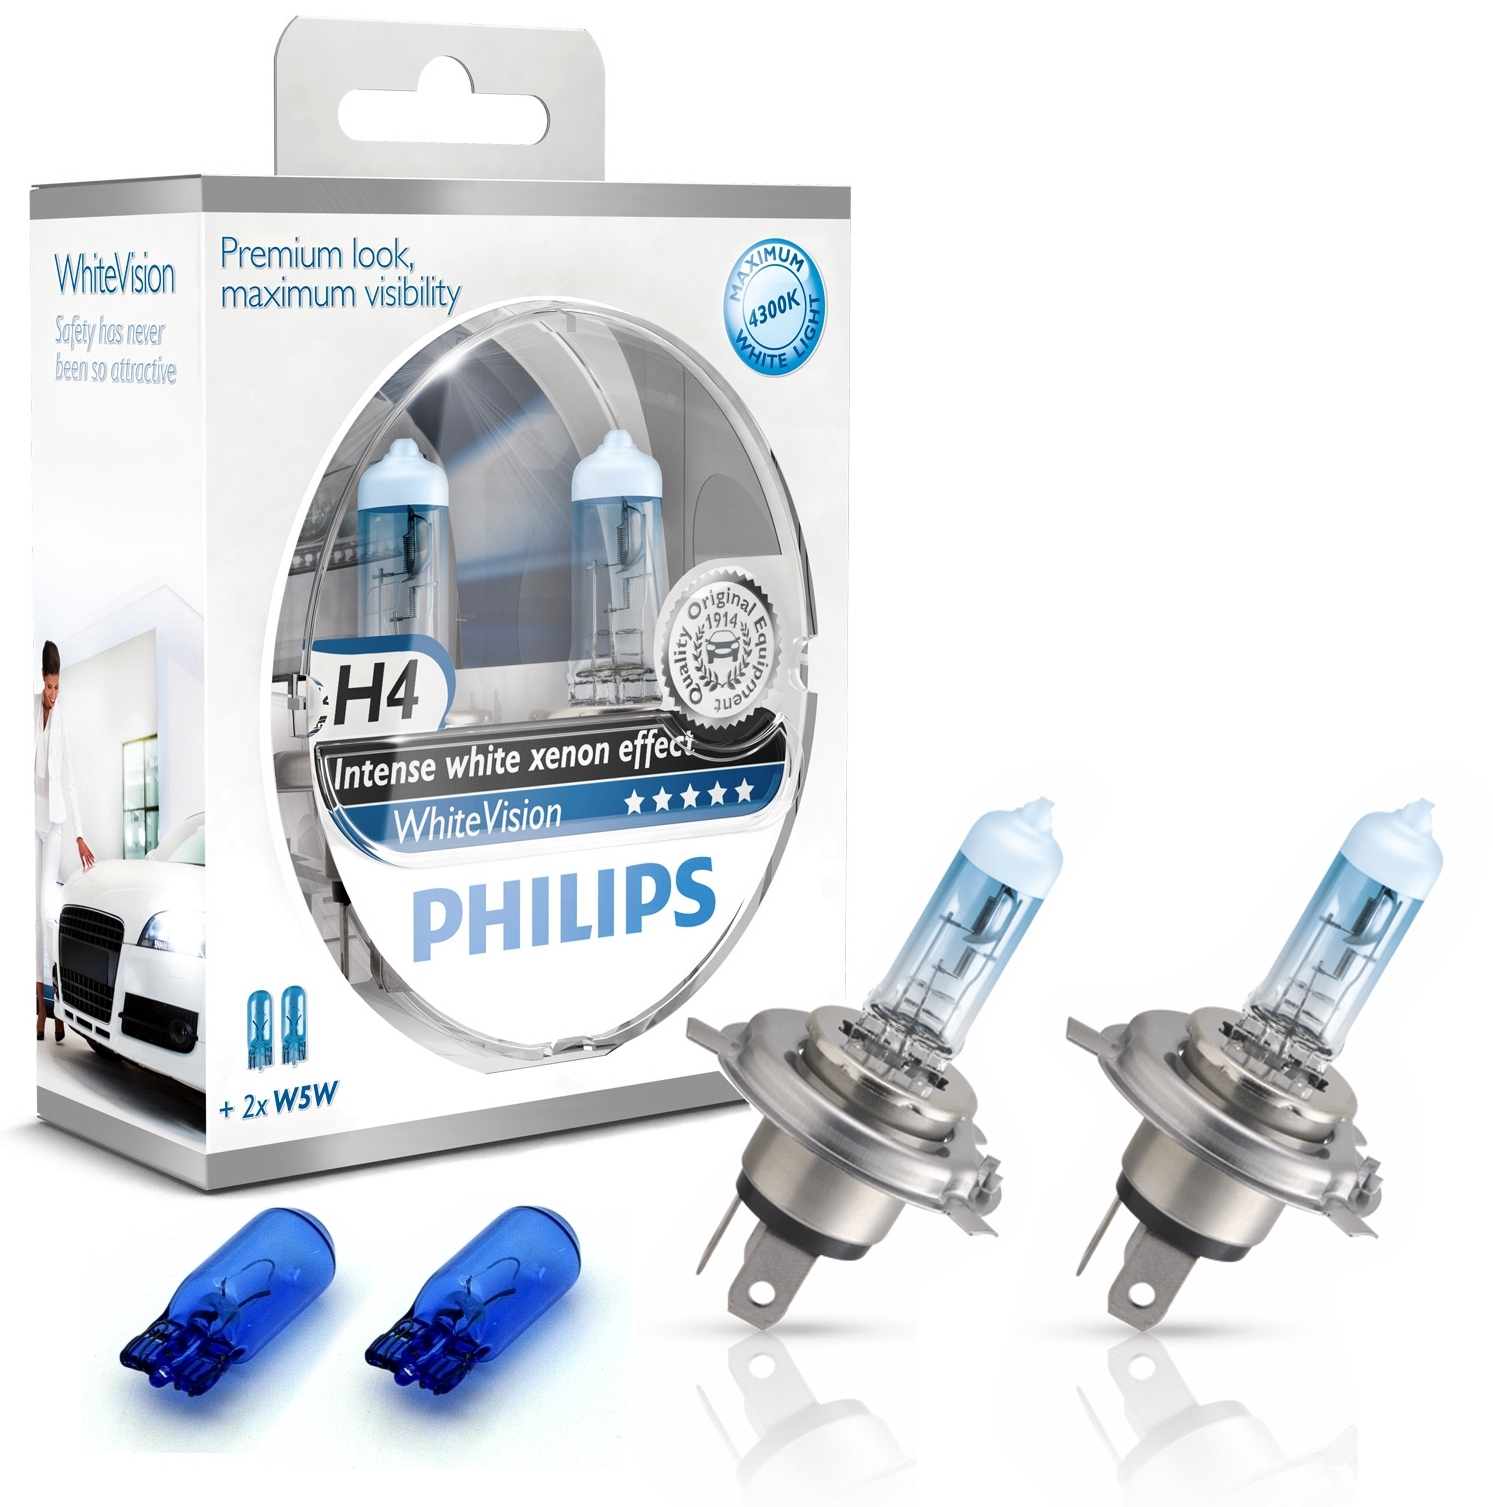 philips h4 whitevision xenoneffect 12v 55w ad tuning. Black Bedroom Furniture Sets. Home Design Ideas